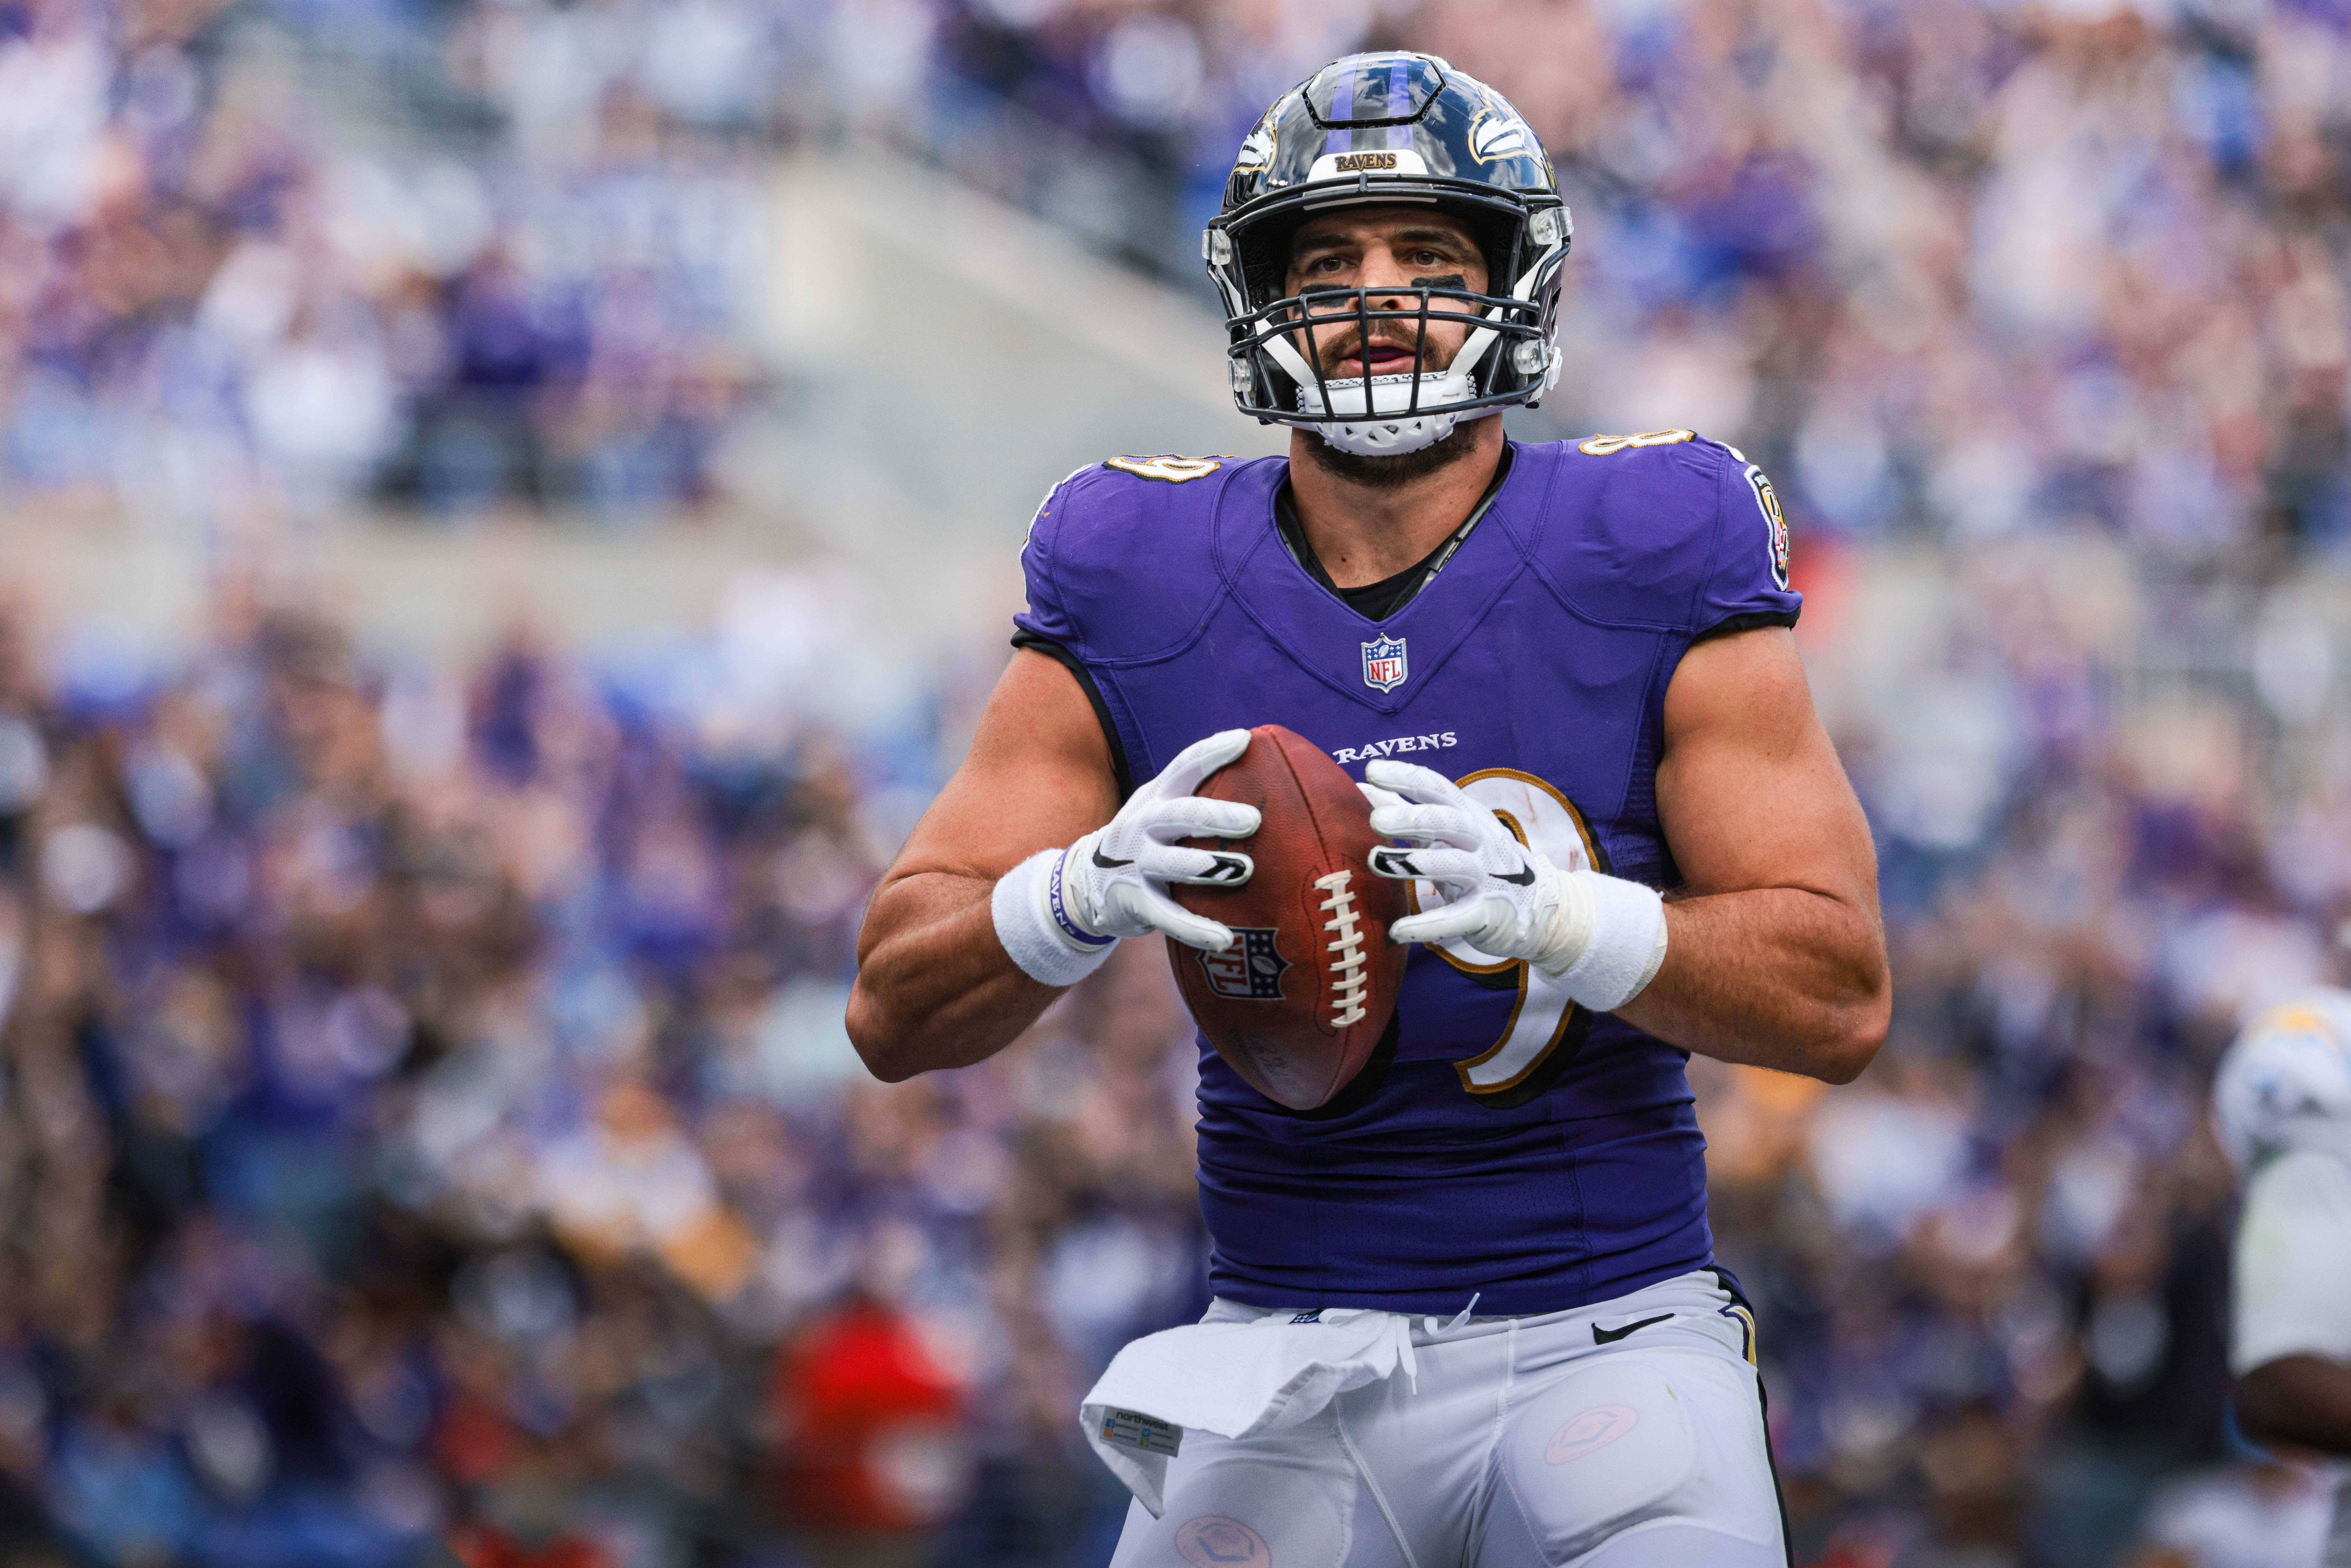 Baltimore Ravens tight end Mark Andrews (89) celebrates his touchdown reception during the second half against the Los Angeles Chargers at M&T Bank Stadium.